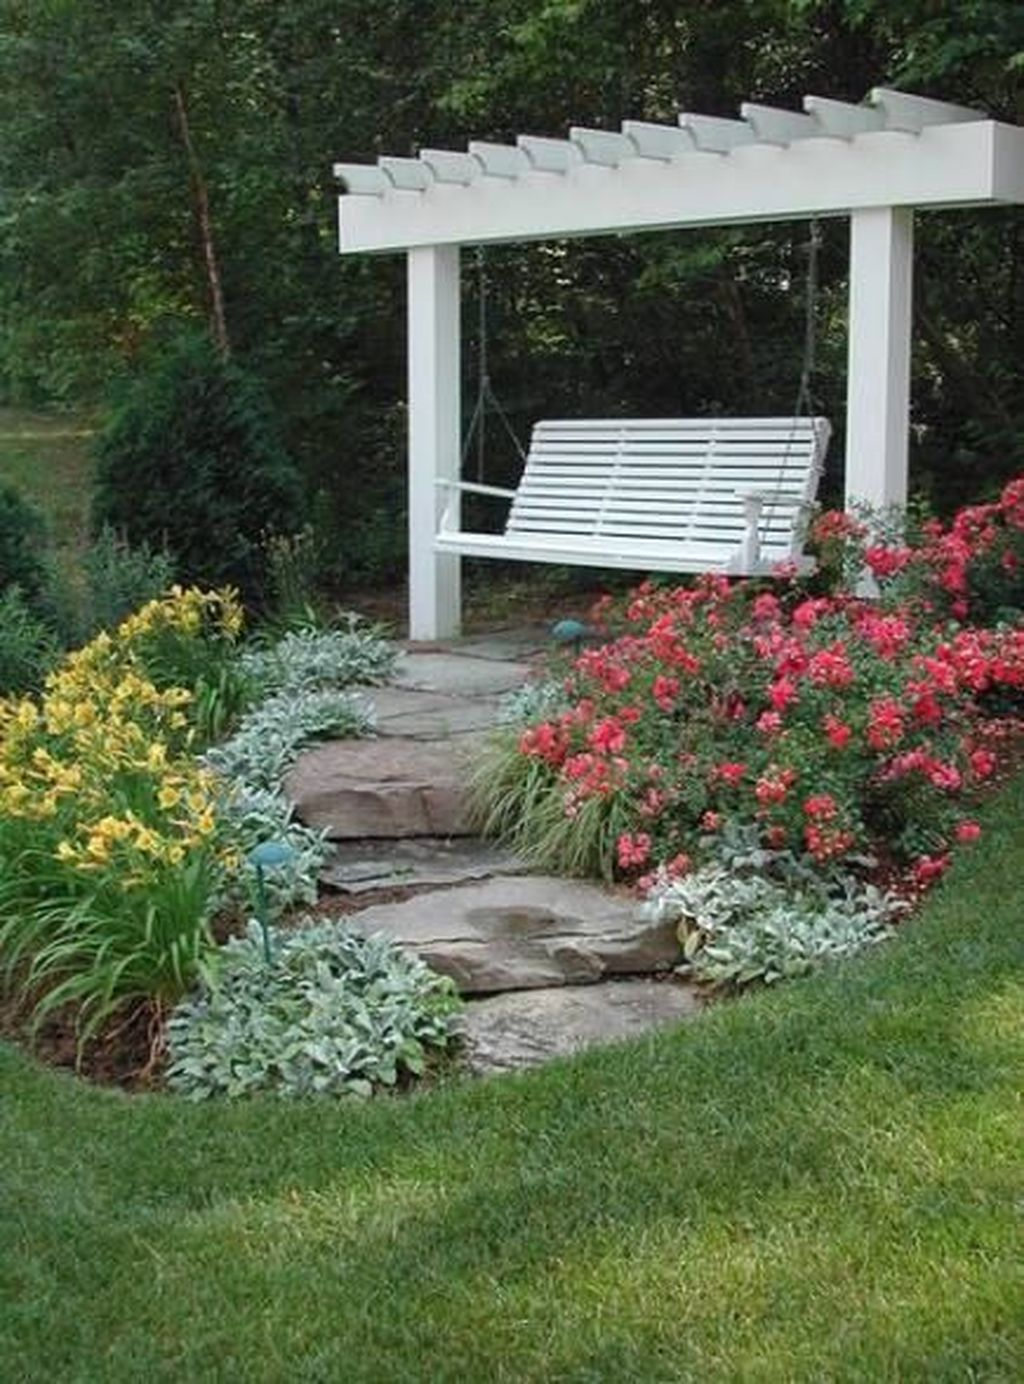 The Best Front Yard Landscaping Ideas Sitting Area 23